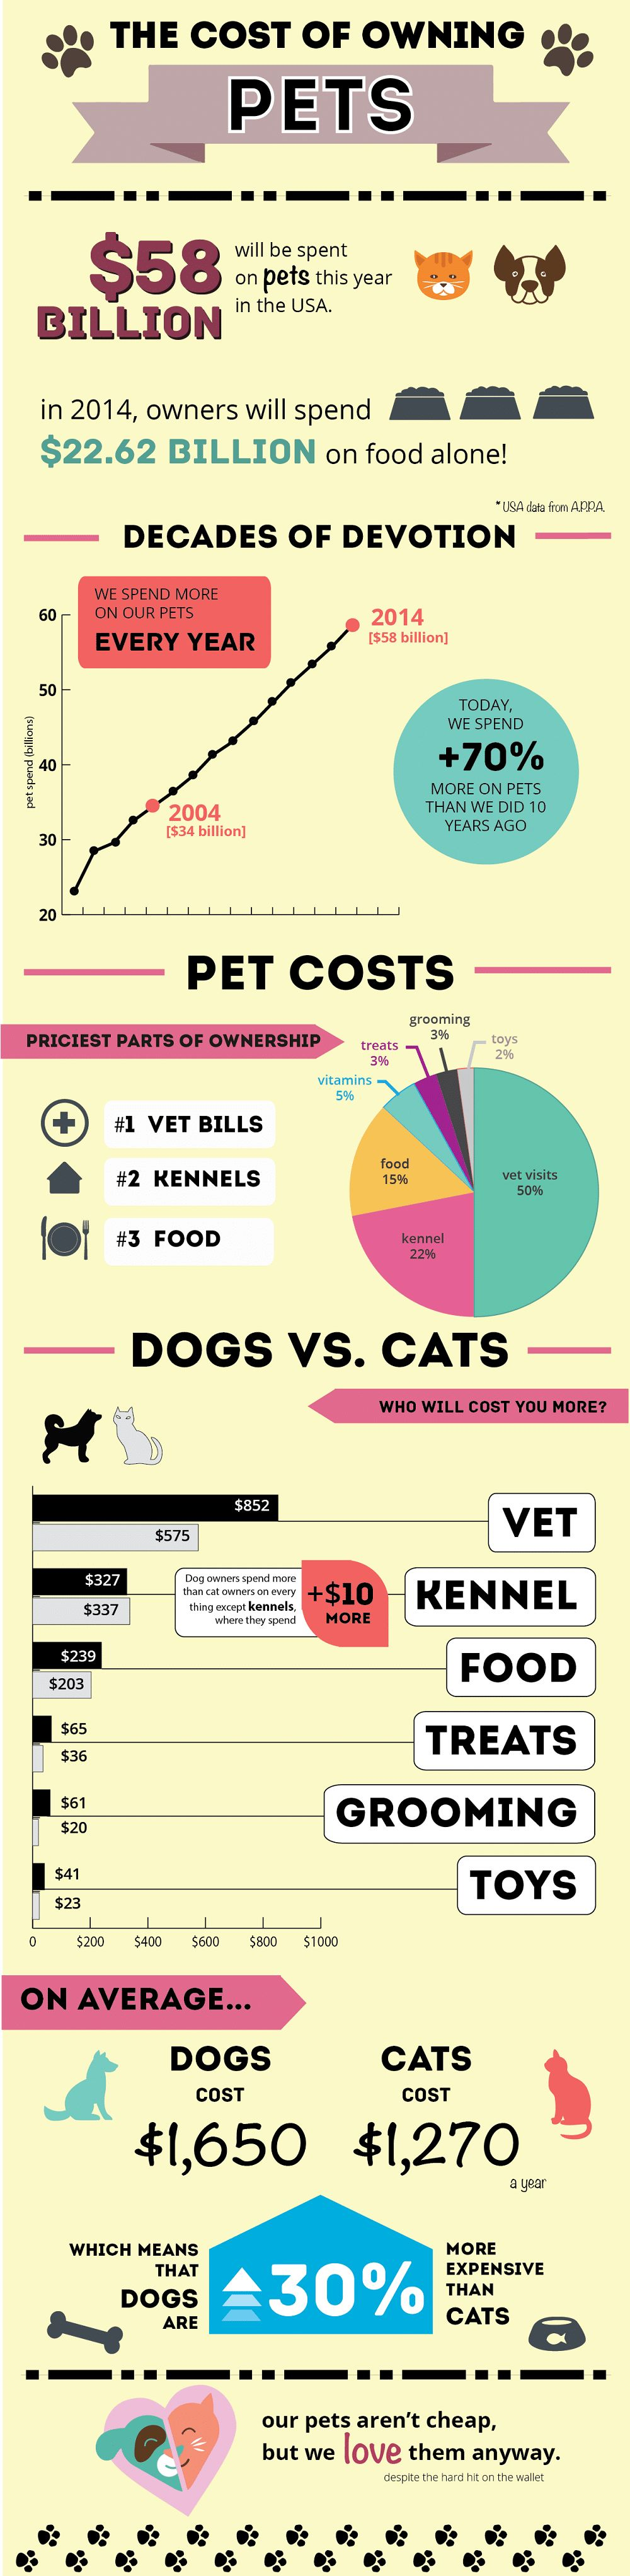 Cost of owning a dog: facts and figures that every potential dog owner should know